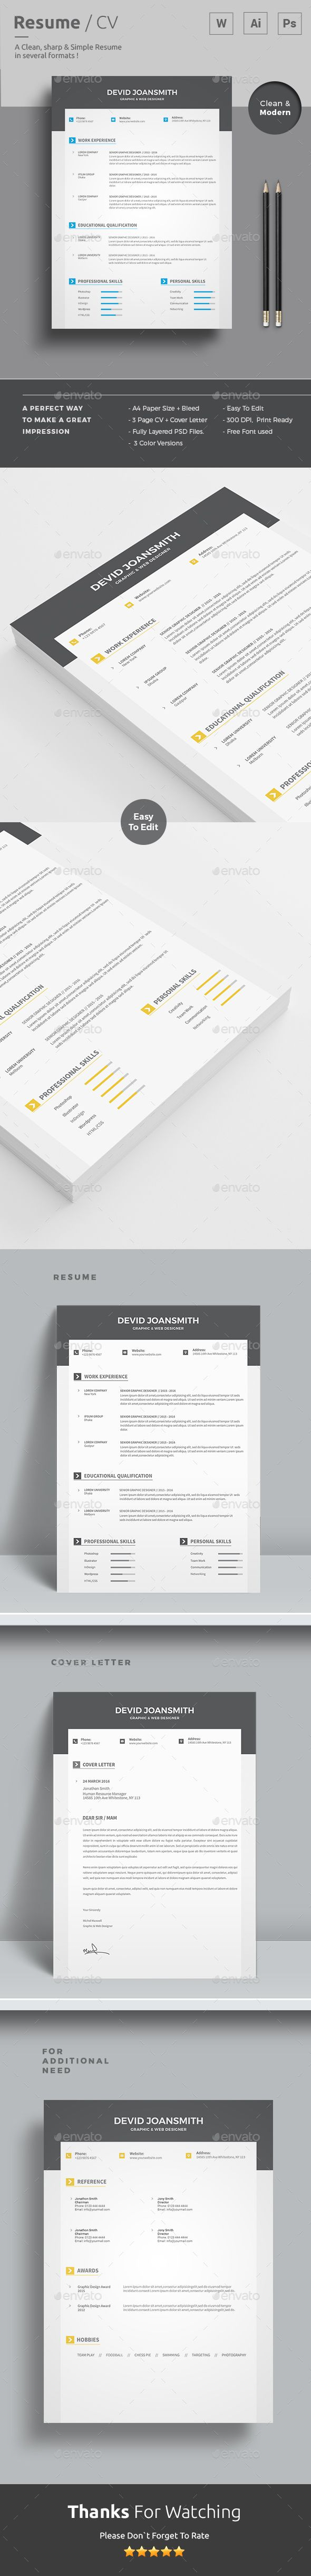 Resume Template CVTemplate Cover Letter